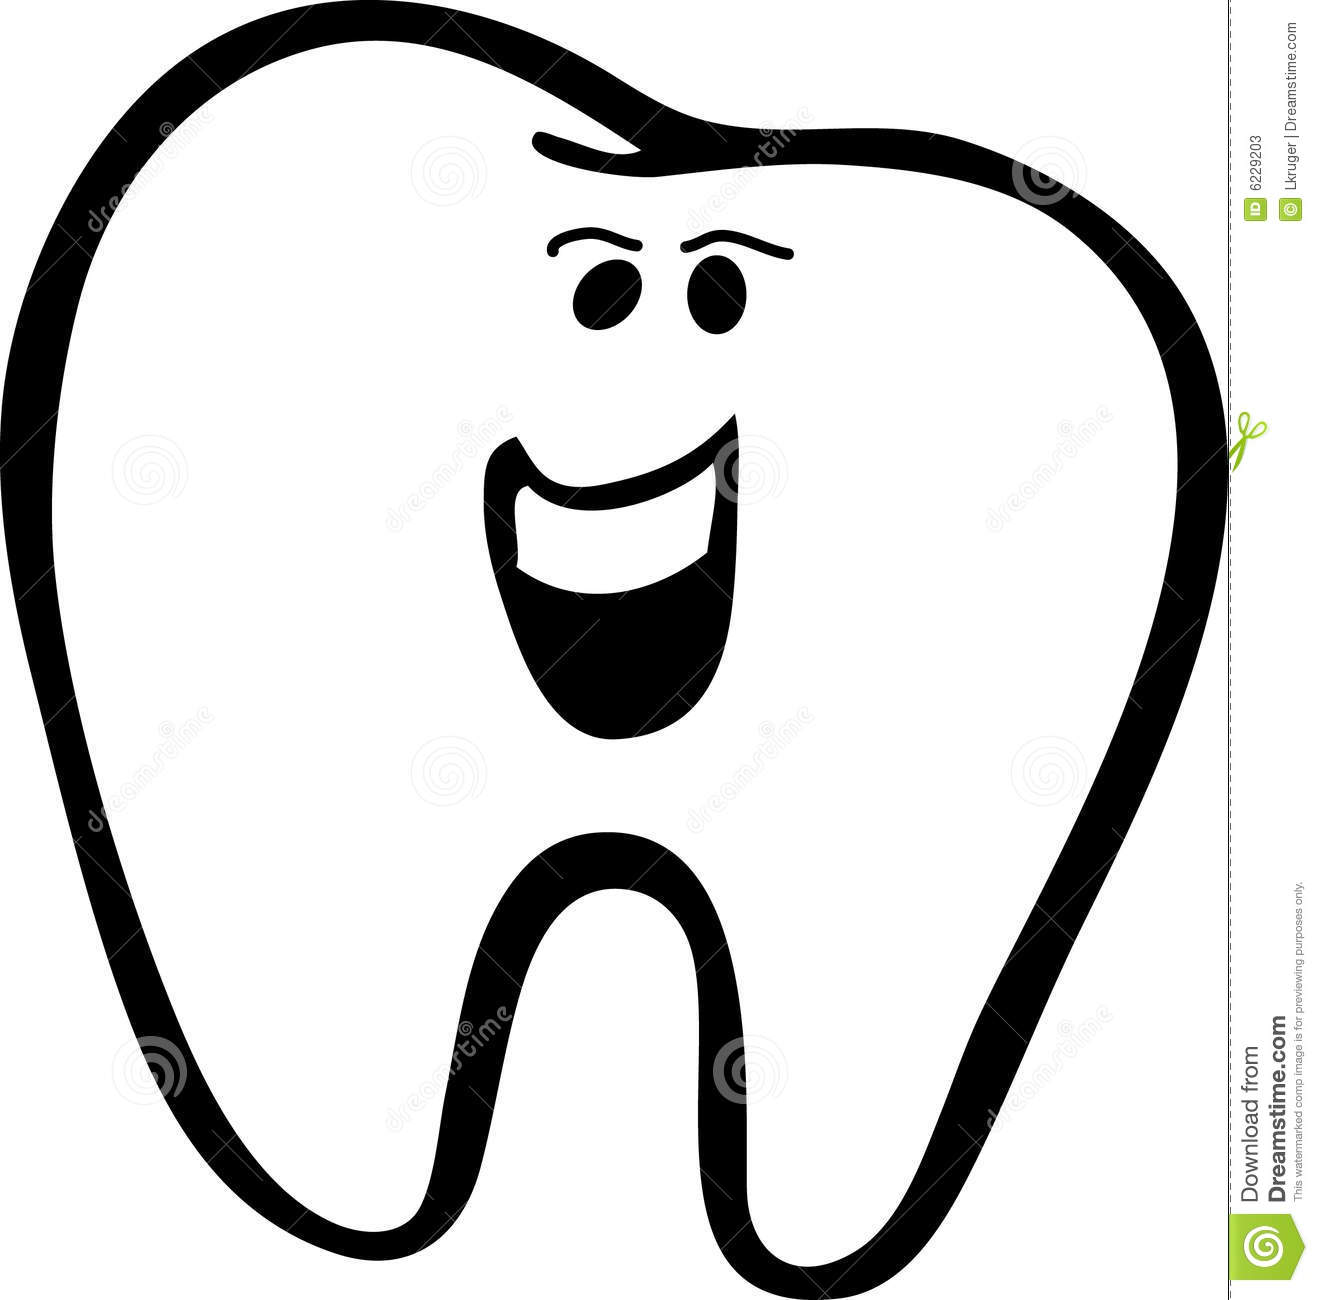 Smile Clipart Black And White